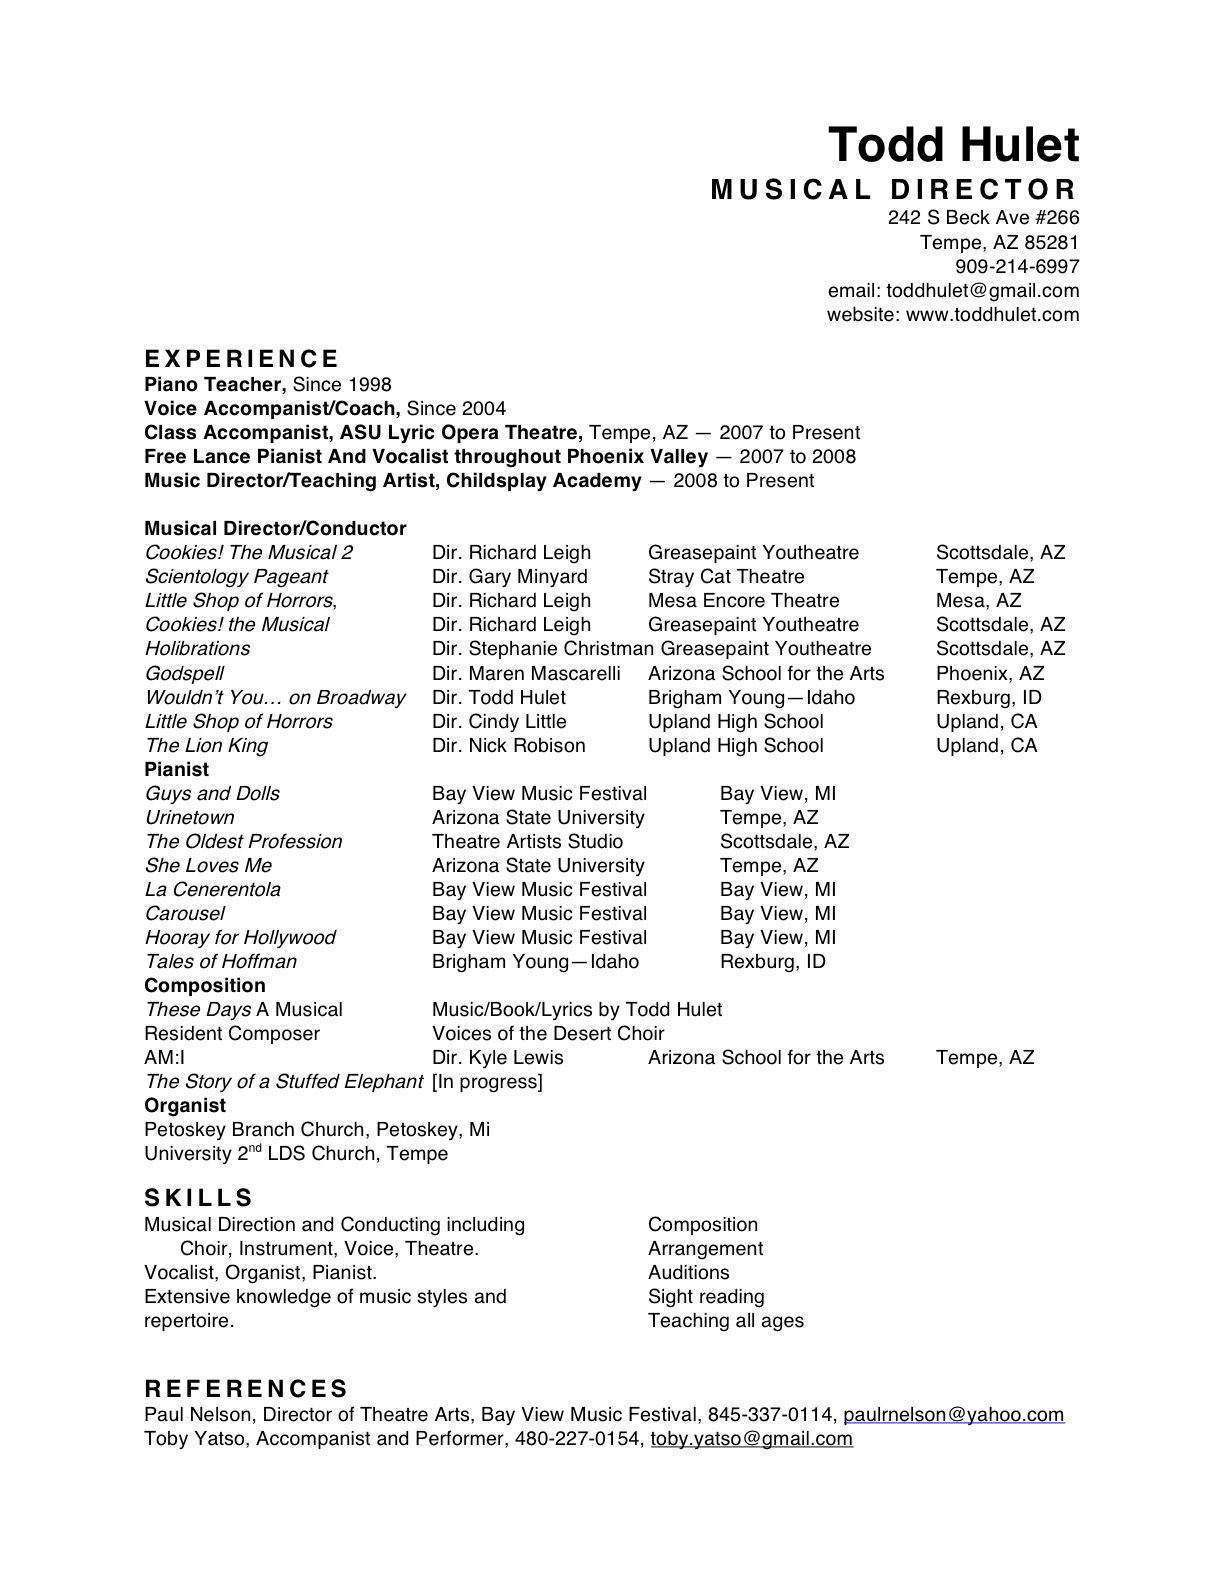 musician profile sample sampling sample dance audition resume